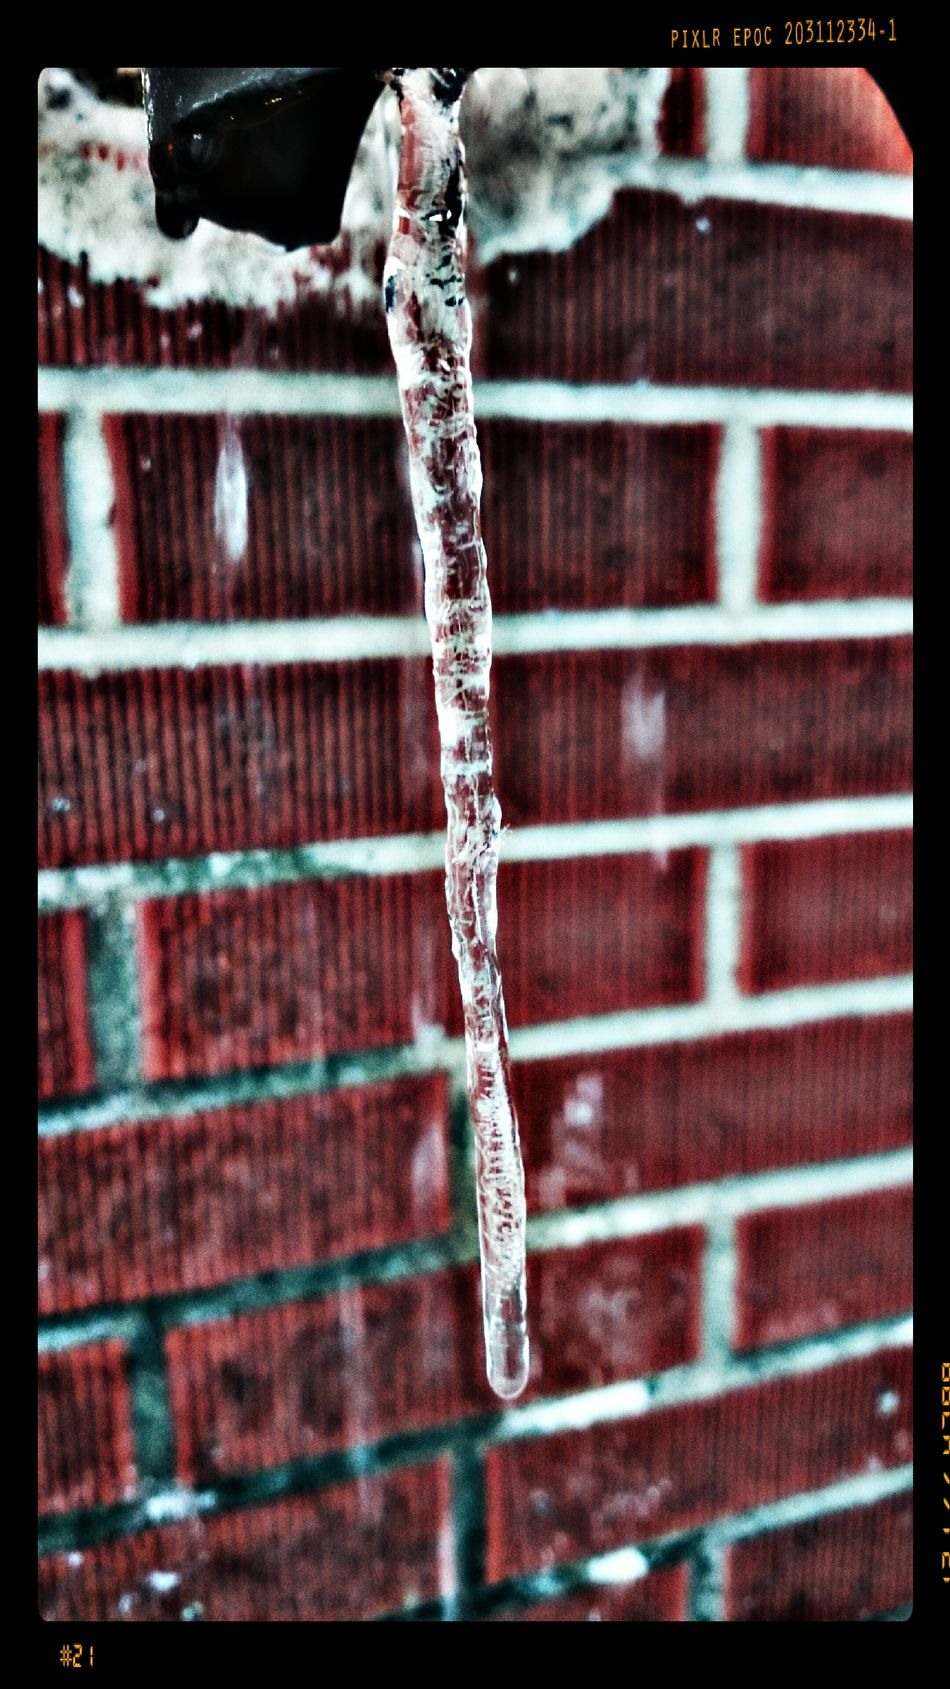 ...the icicle... Ice Icicles Icicle Brick Wall Frozen Photography Frozen Nature Freezing Cold ❄ Beautiful World Bold Red Sony Xperia EyeEm Gallery Eyeemphotography Transparency Transparent